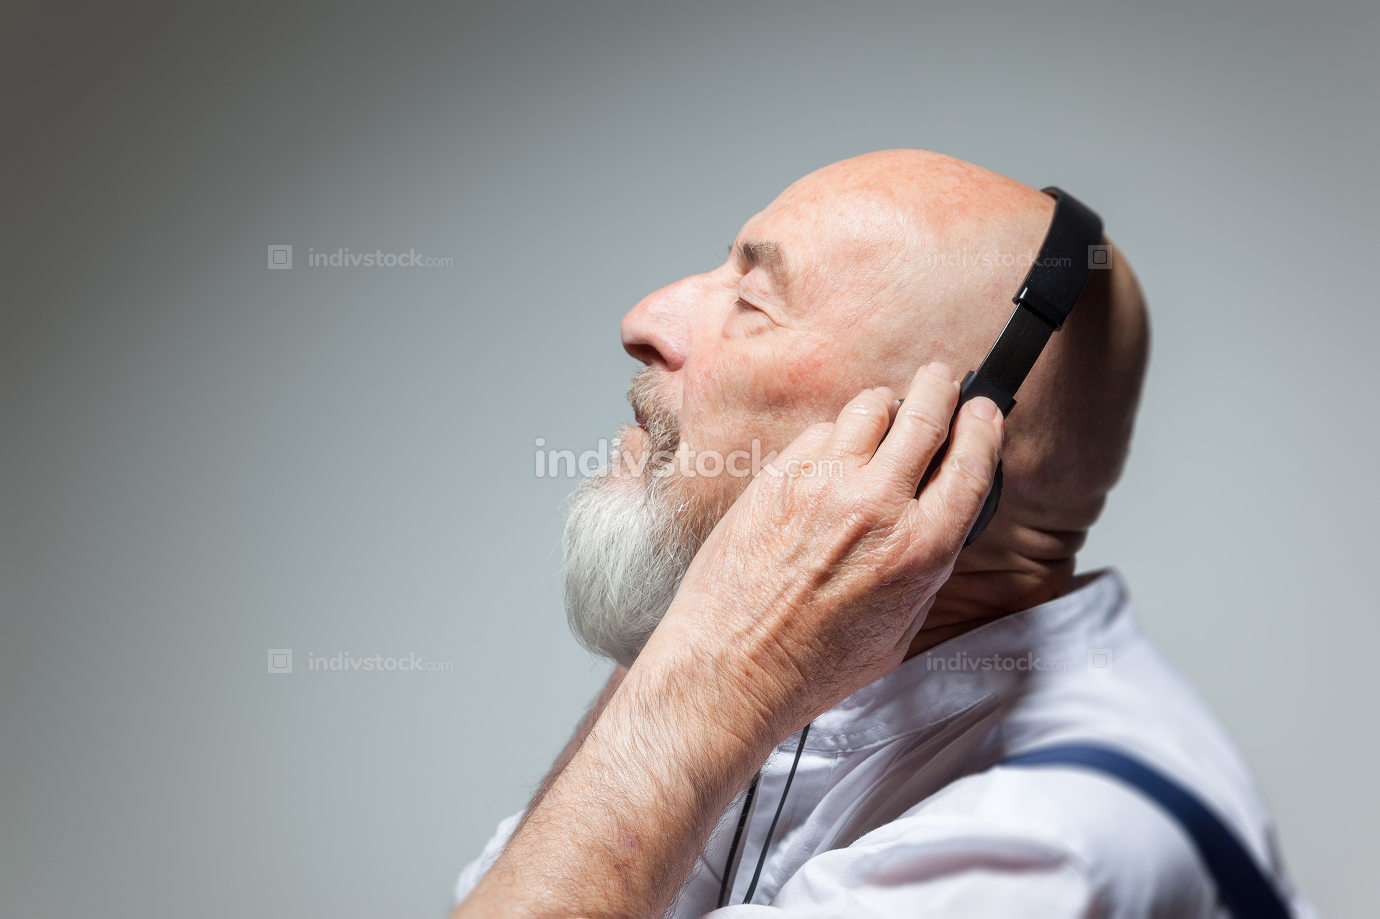 elderly bald head man with headphones